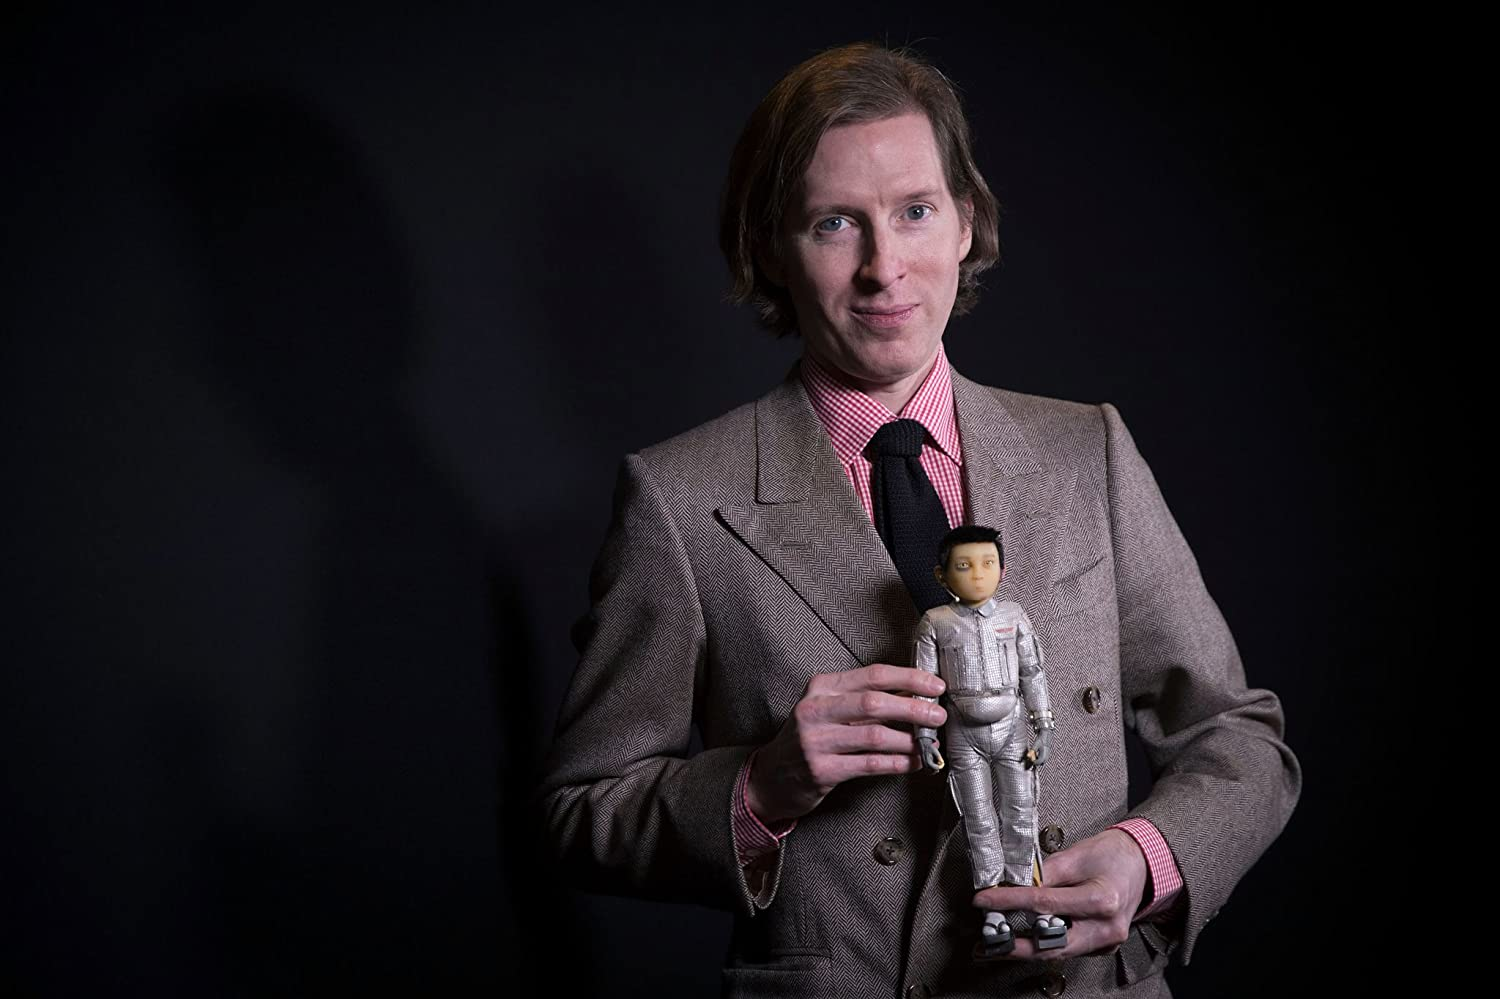 Wes Anderson at an event for Isle of Dogs (2018)